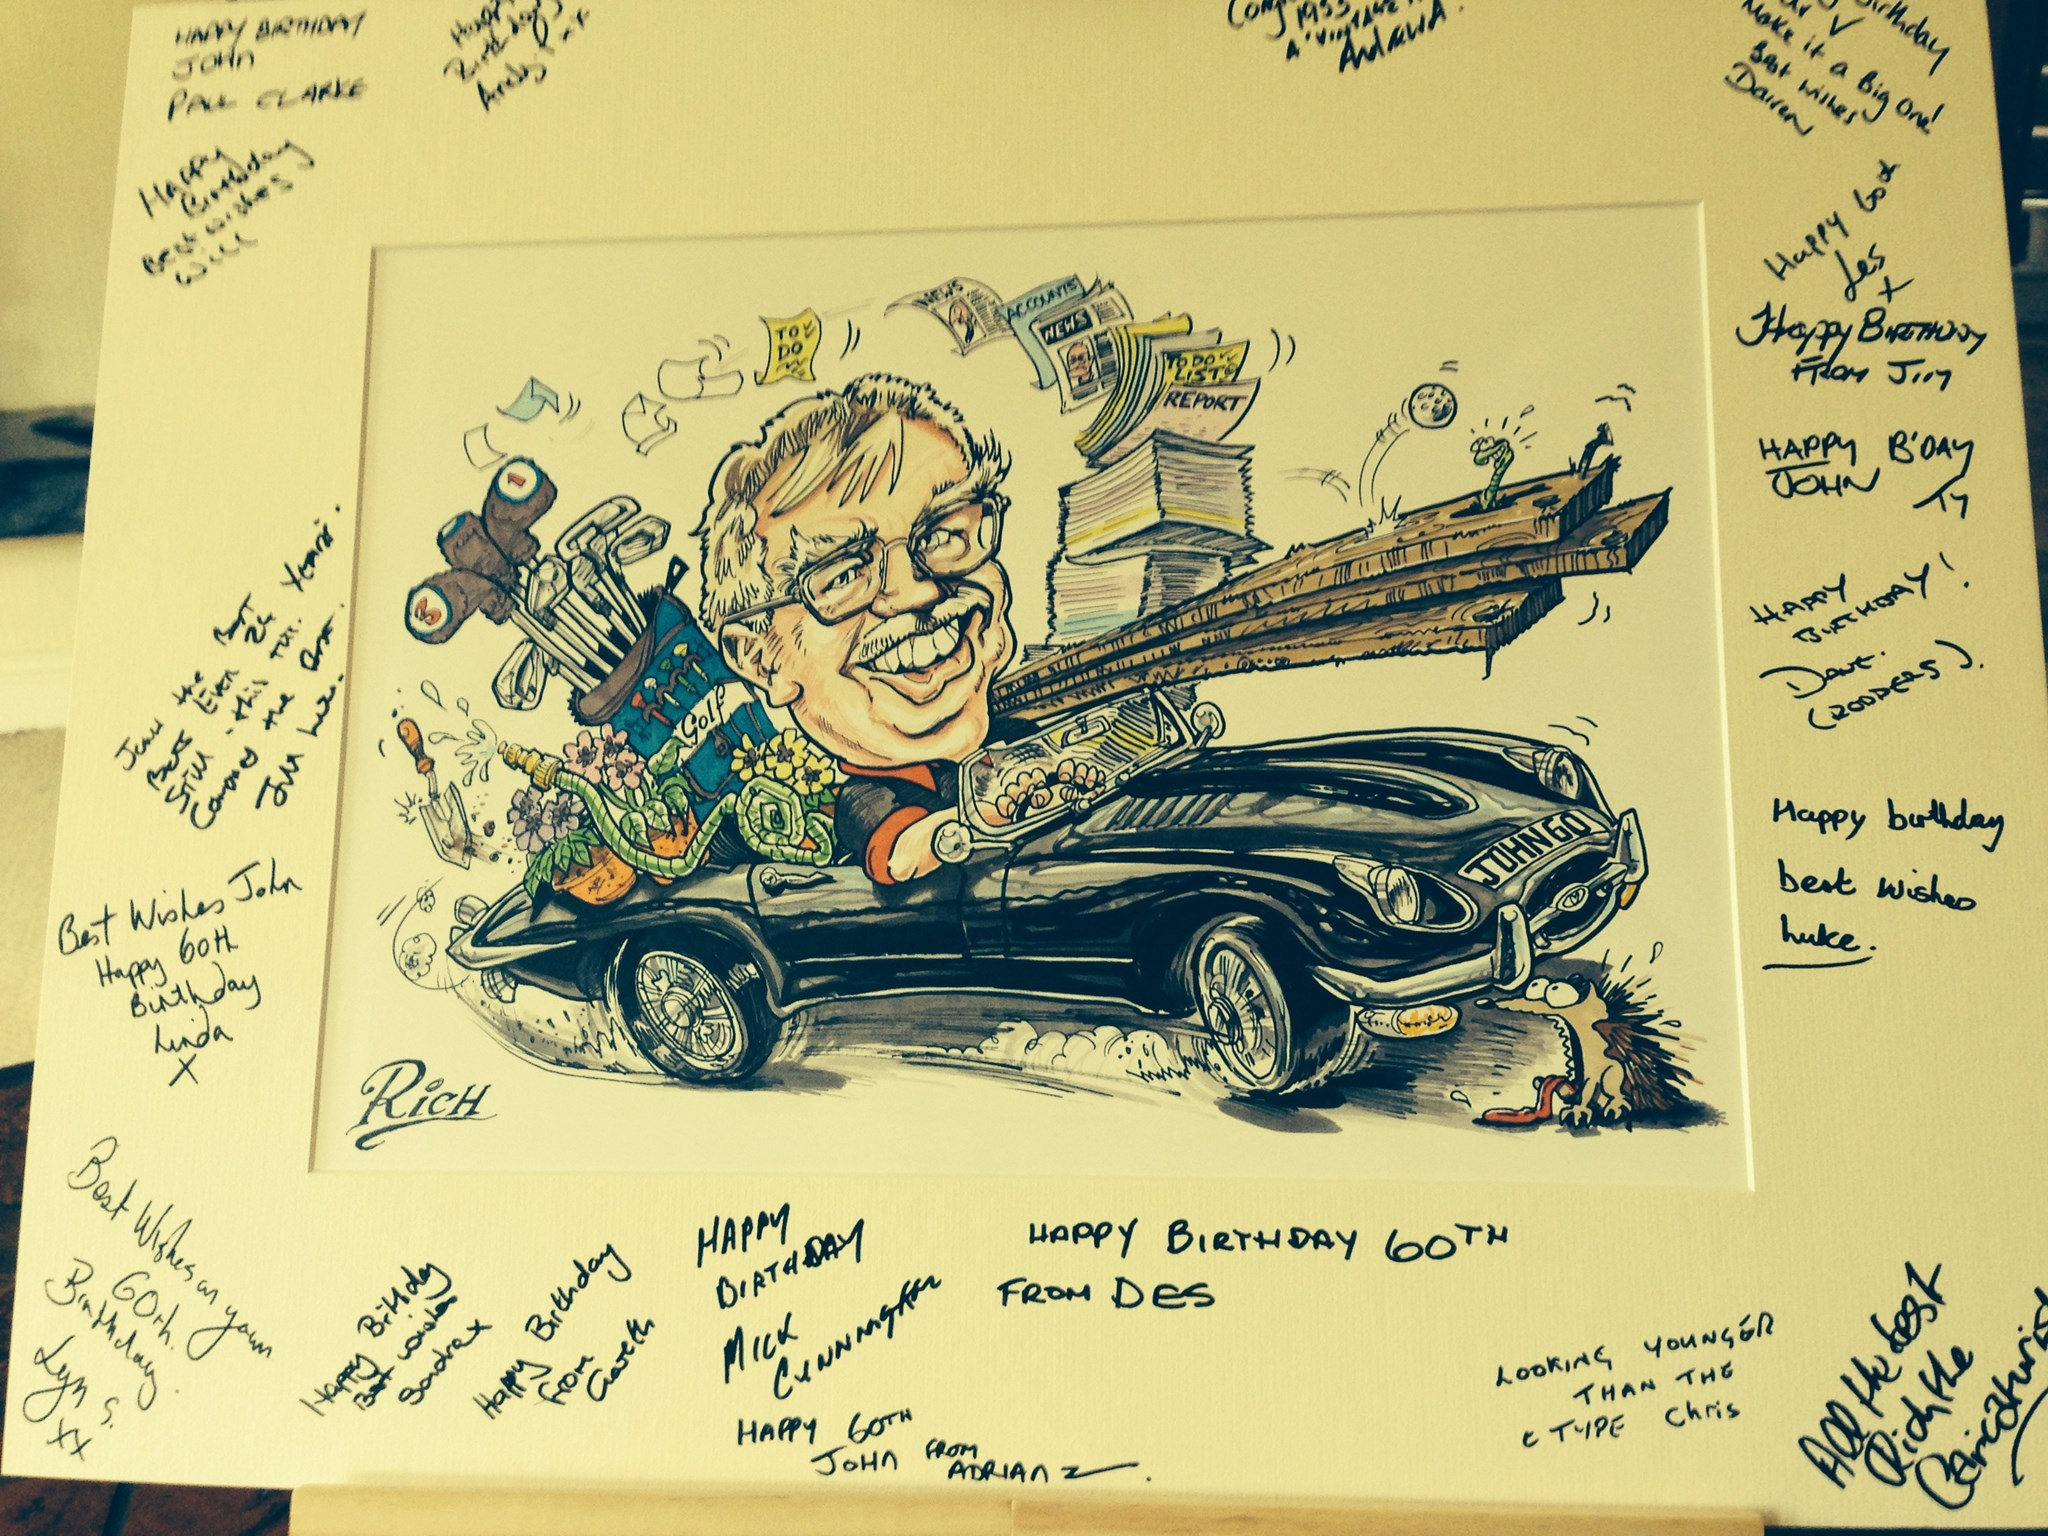 John's caricature signed by VT